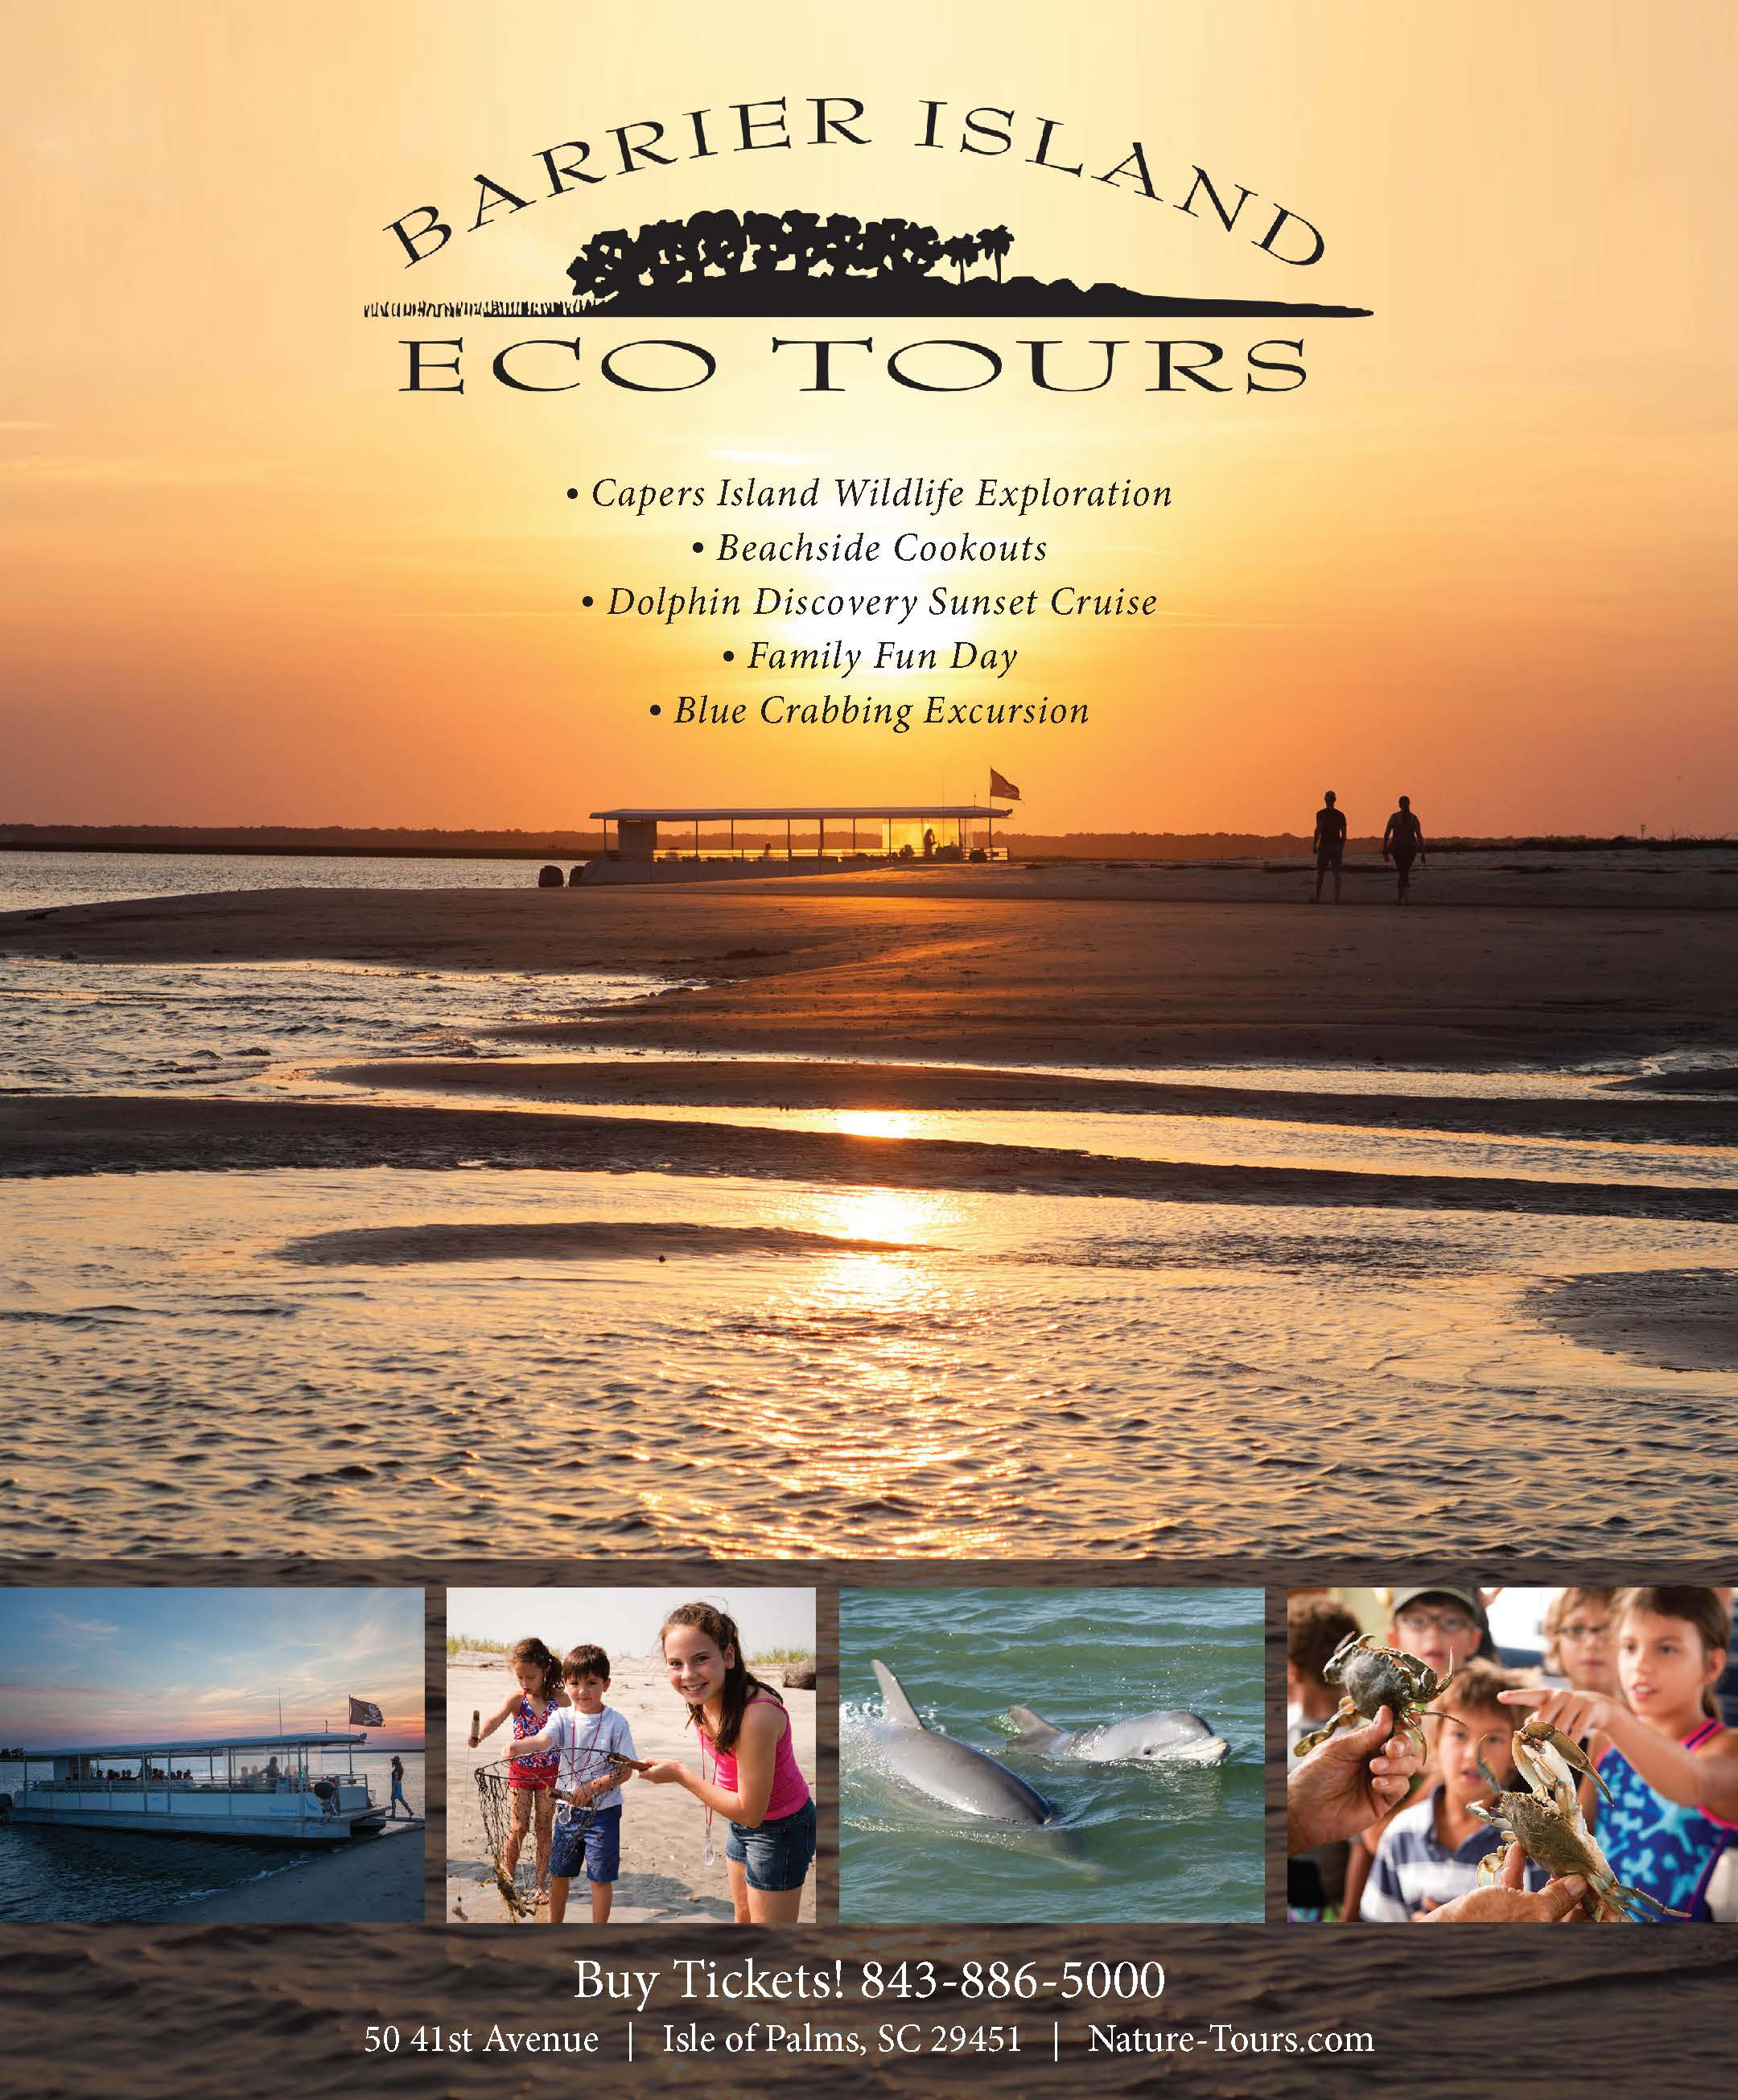 "Barrier Island Eco Tours -- <a href=""http://nature-tours.com/"">http://nature-tours.com/</a>"